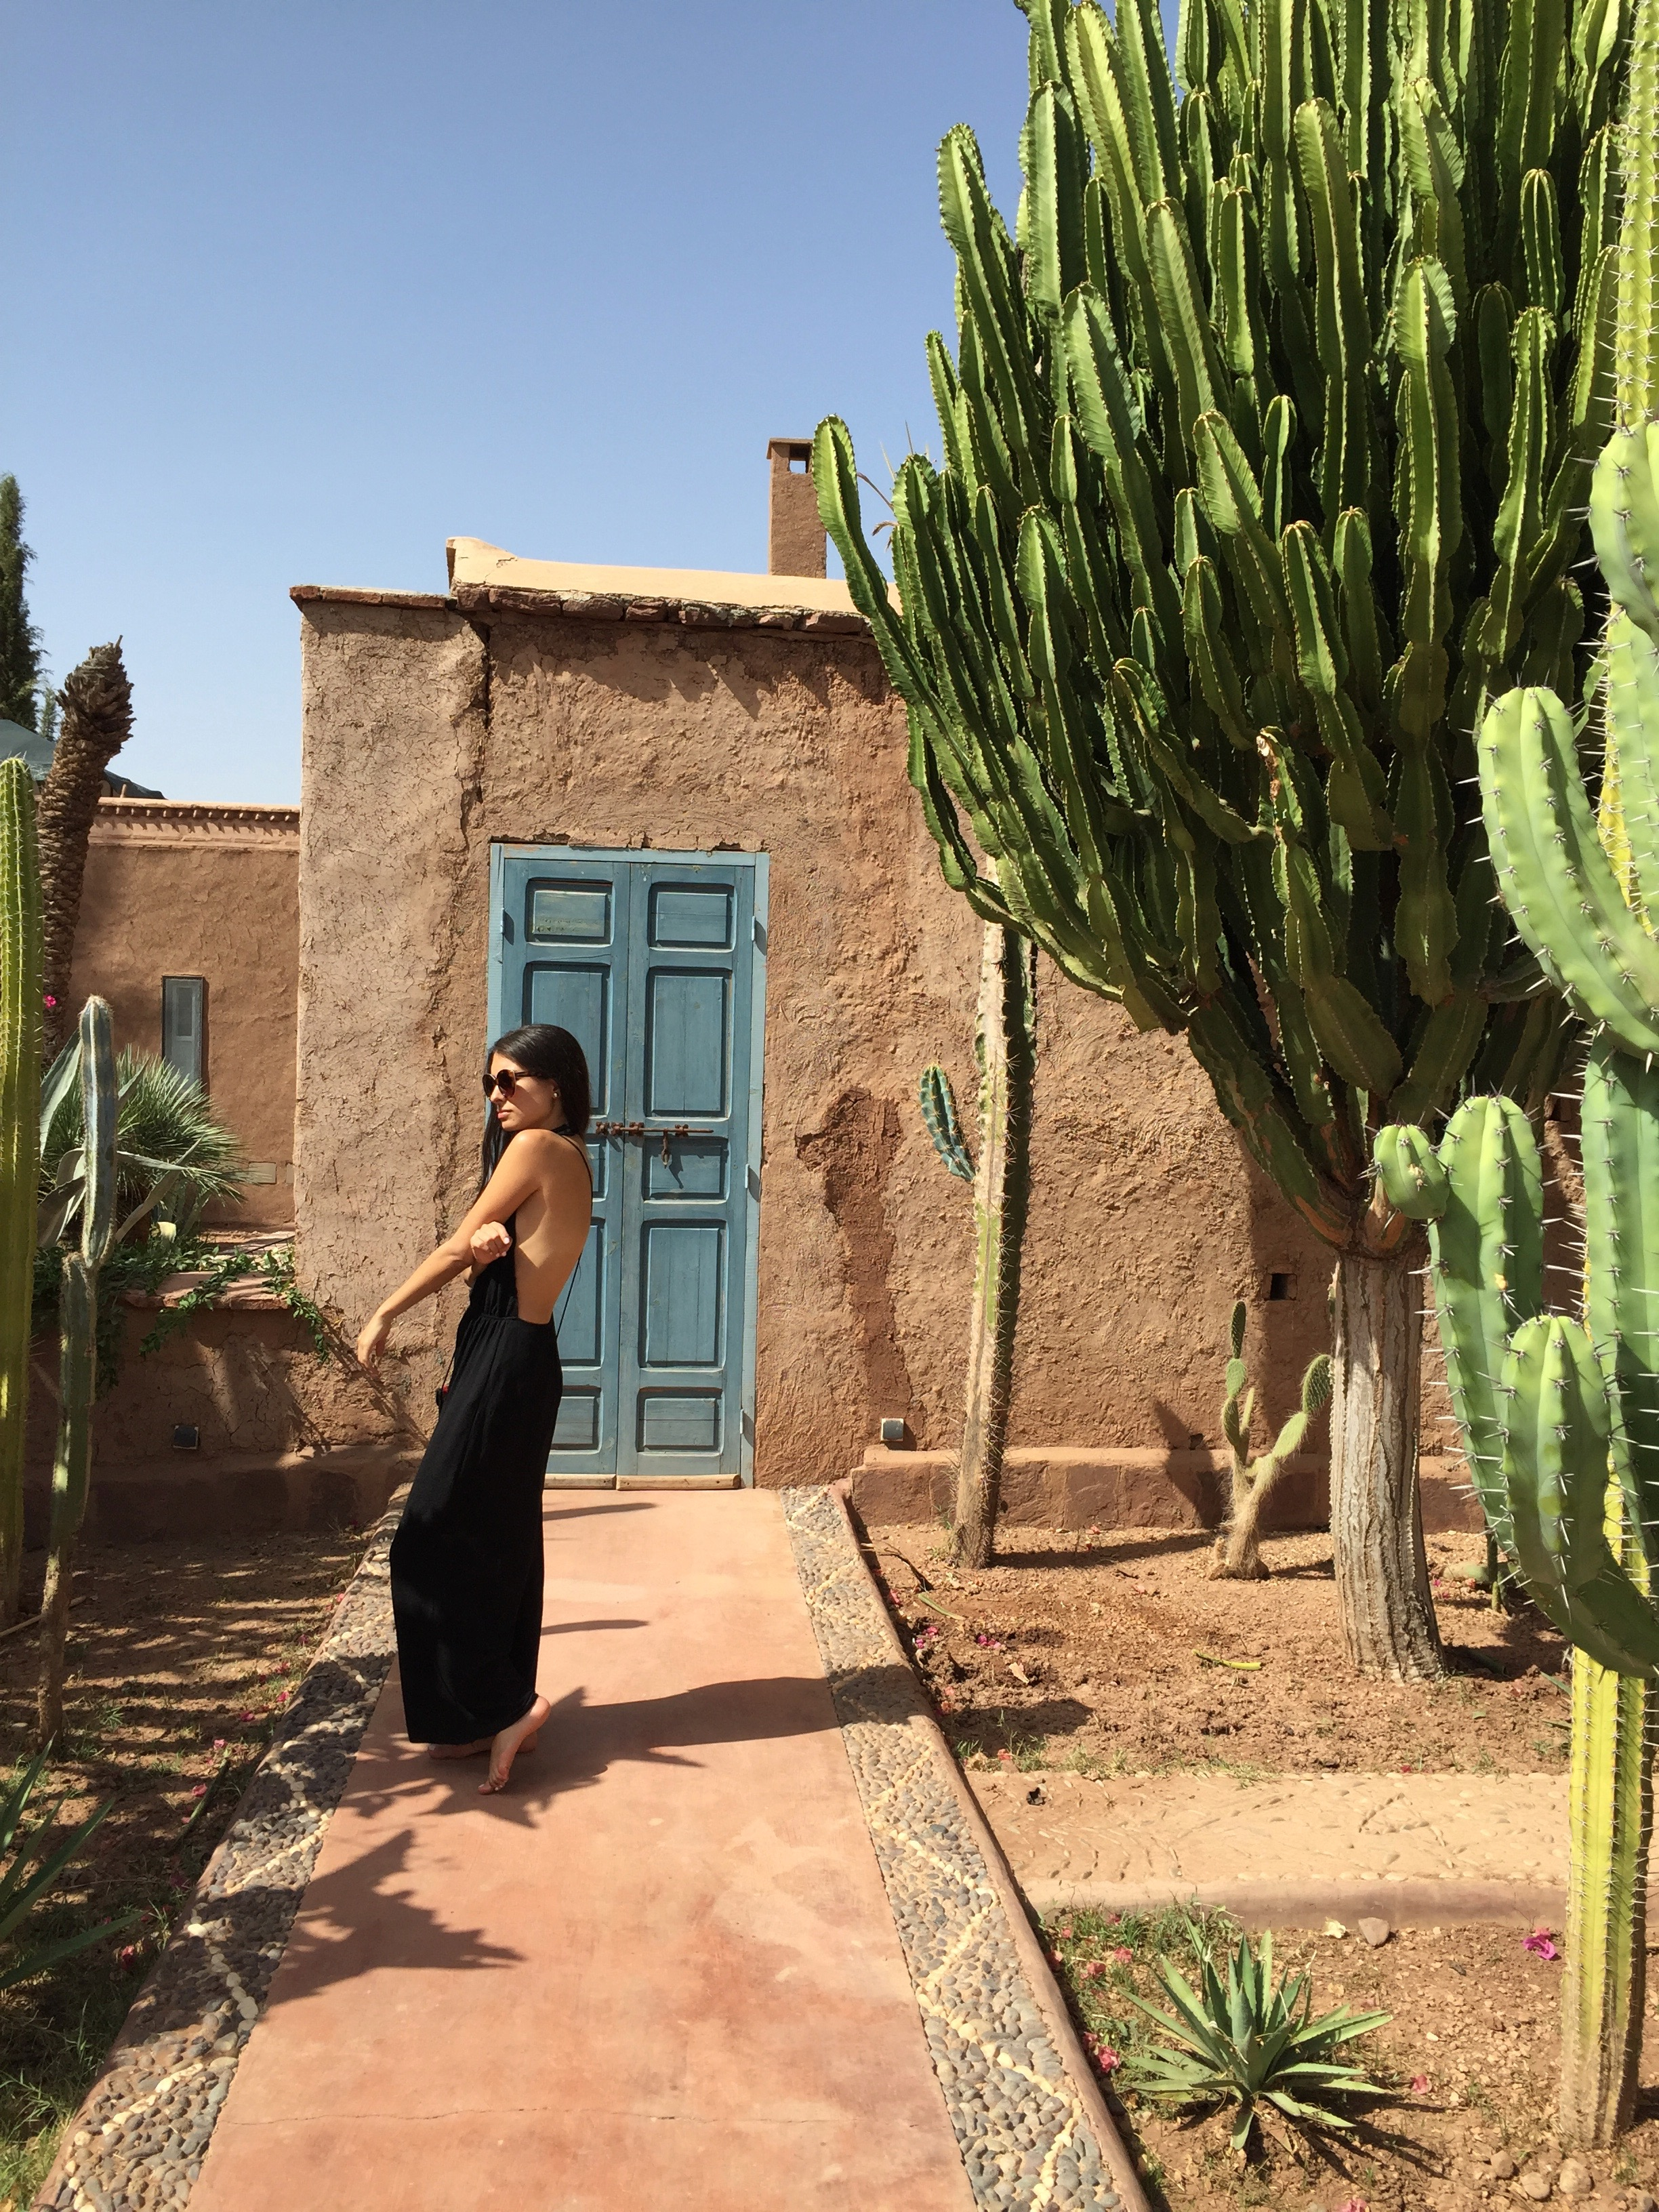 fer millan fernada millan travel Marrakech travel blog fashion blog Beldi country club